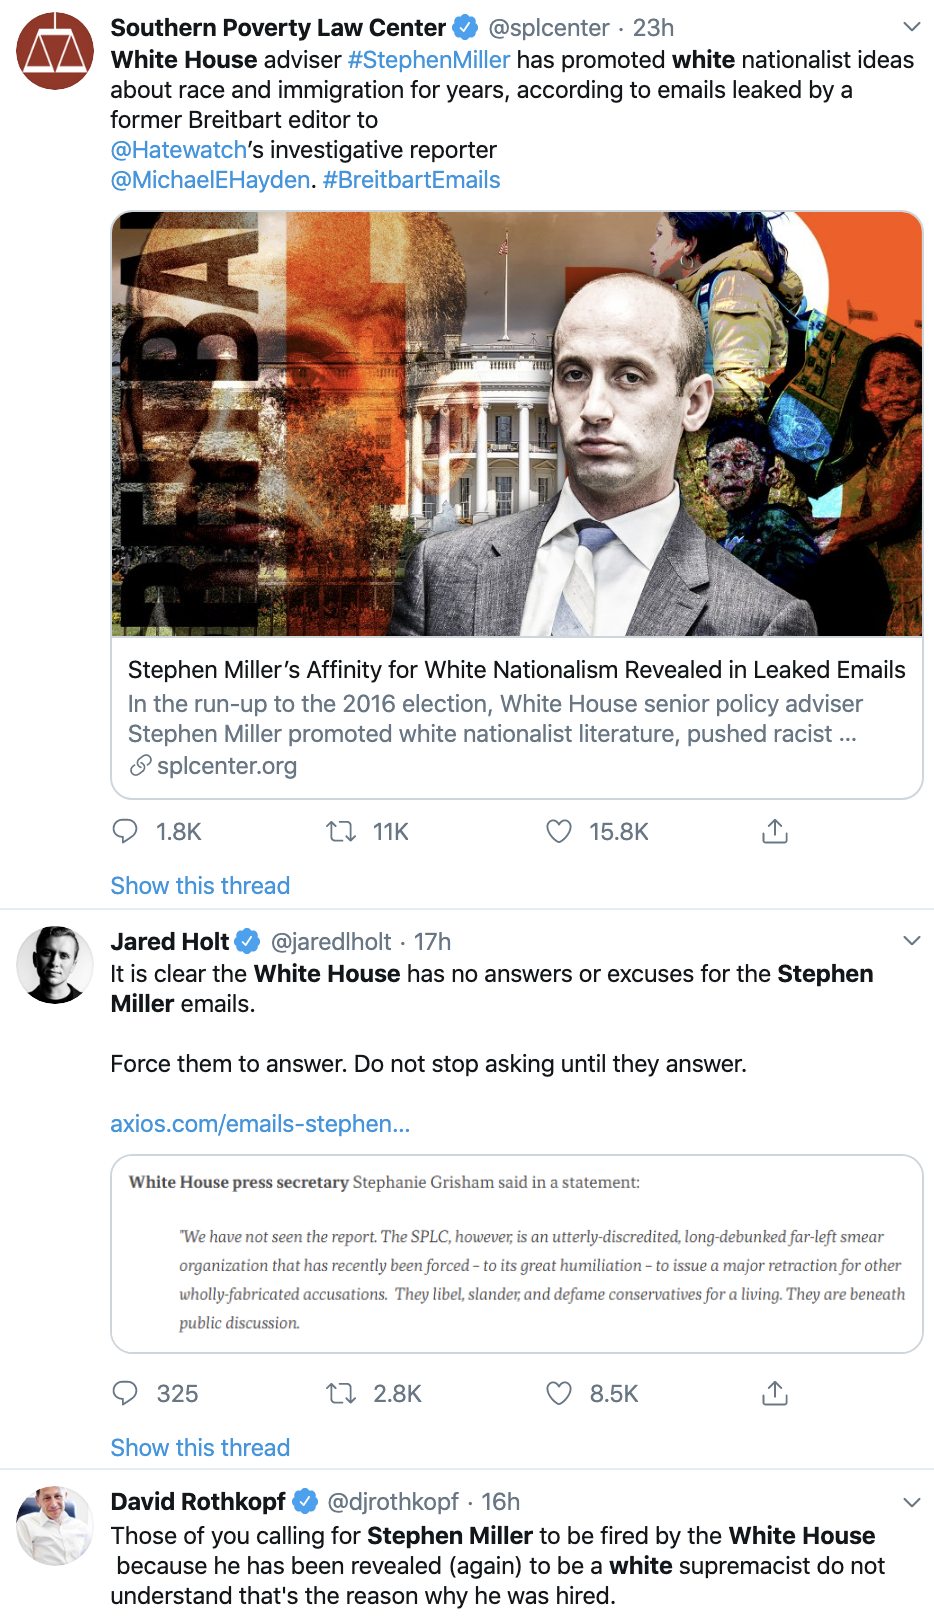 Screen-Shot-2019-11-13-at-9.44.00-AM Stephen Miller Called On To Resign - Mass Online Protests Roar Alt-Right Anti-Semitism Black Lives Matter Child Abuse Civil Rights Conspiracy Theory Corruption Crime Domestic Policy Donald Trump Election 2016 Election 2020 Featured Hate Speech Immigration Investigation Islamaphobia Politics Poverty Racism Refugees Scandal Sexual Assault/Rape Social Media Terrorism Top Stories Violence White Privilege White Supremacy